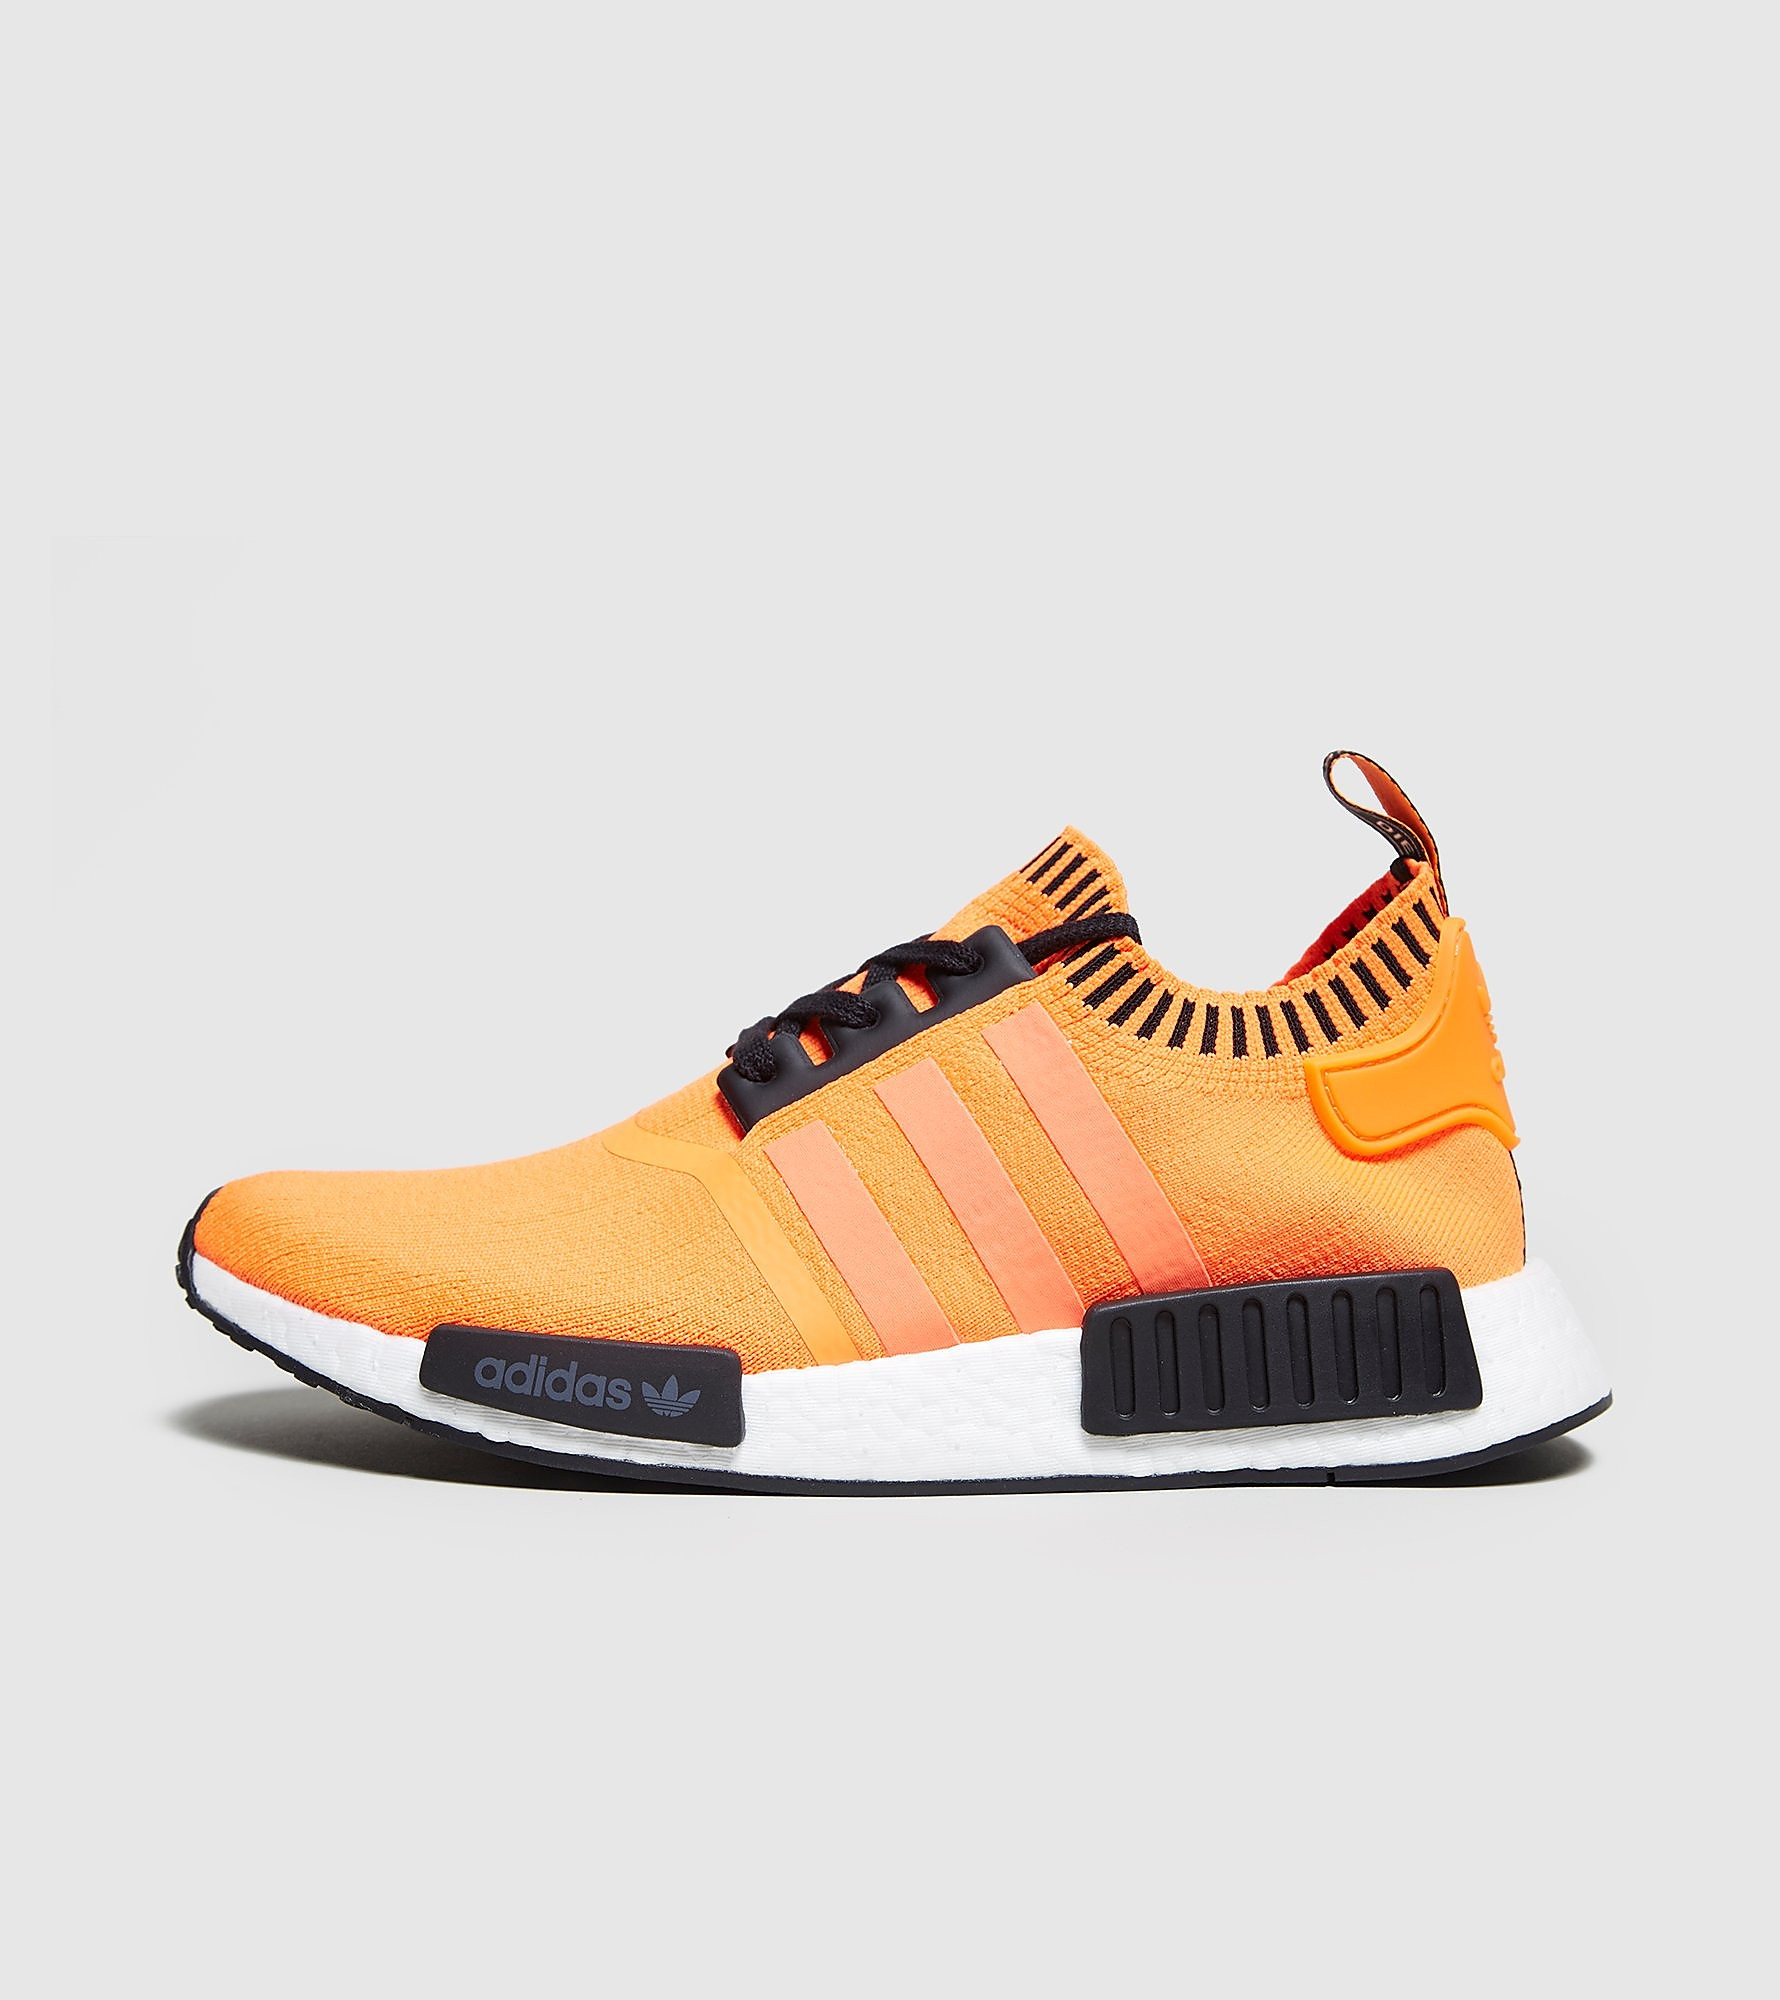 adidas Originals NMD R1 Orange Noise - Exclusivité size?